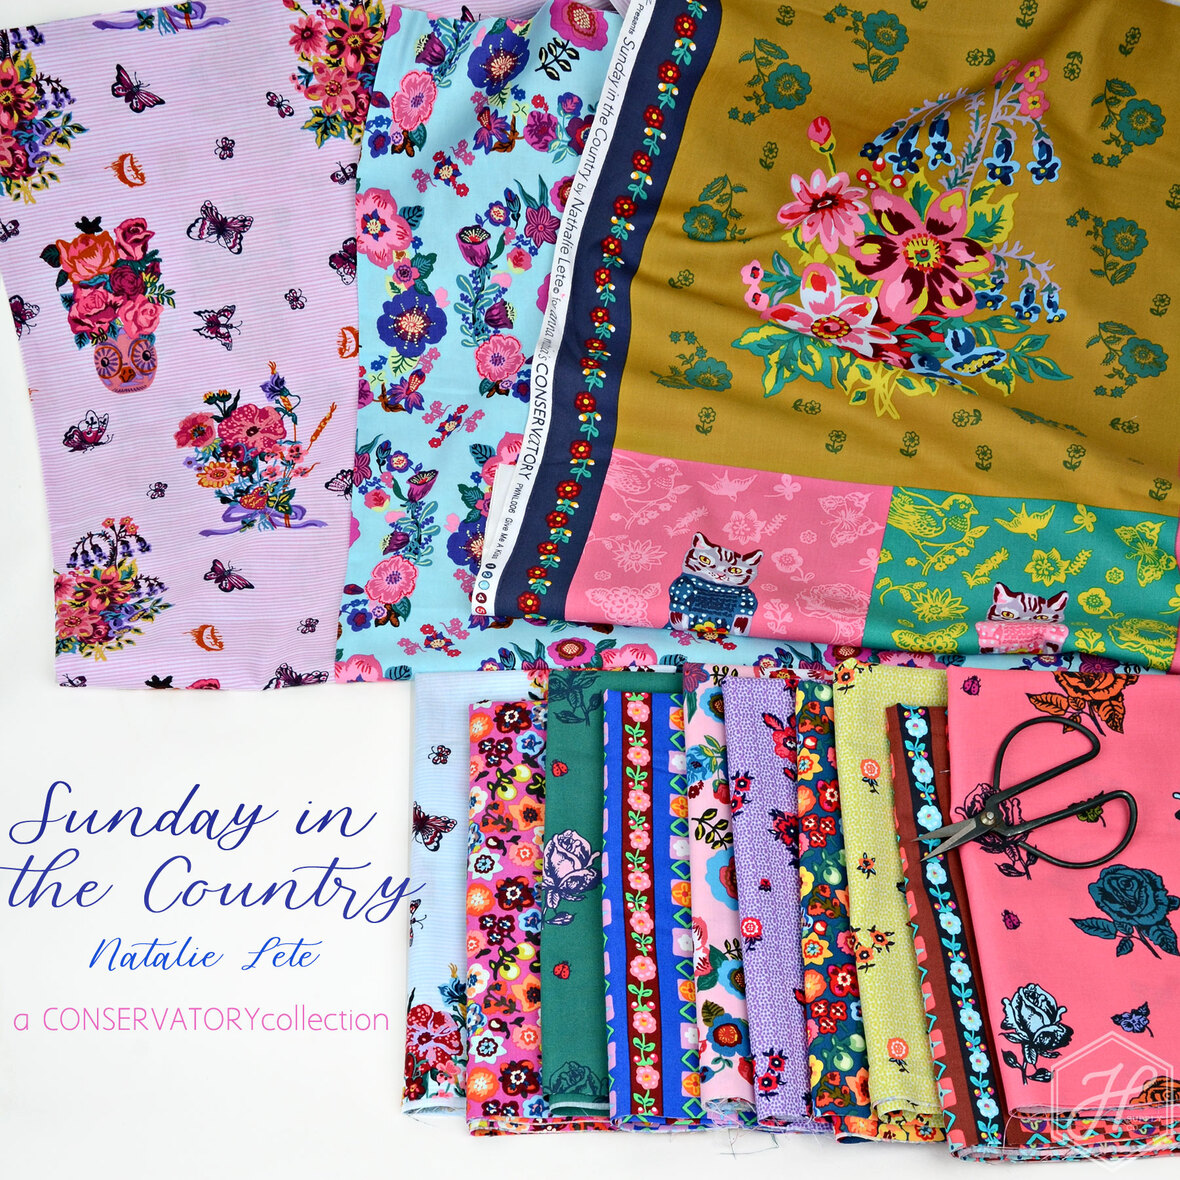 Sunday-in-the-Country-Fabric-collection-Natalie-Lete-at-Hawthorne-Supply-Co